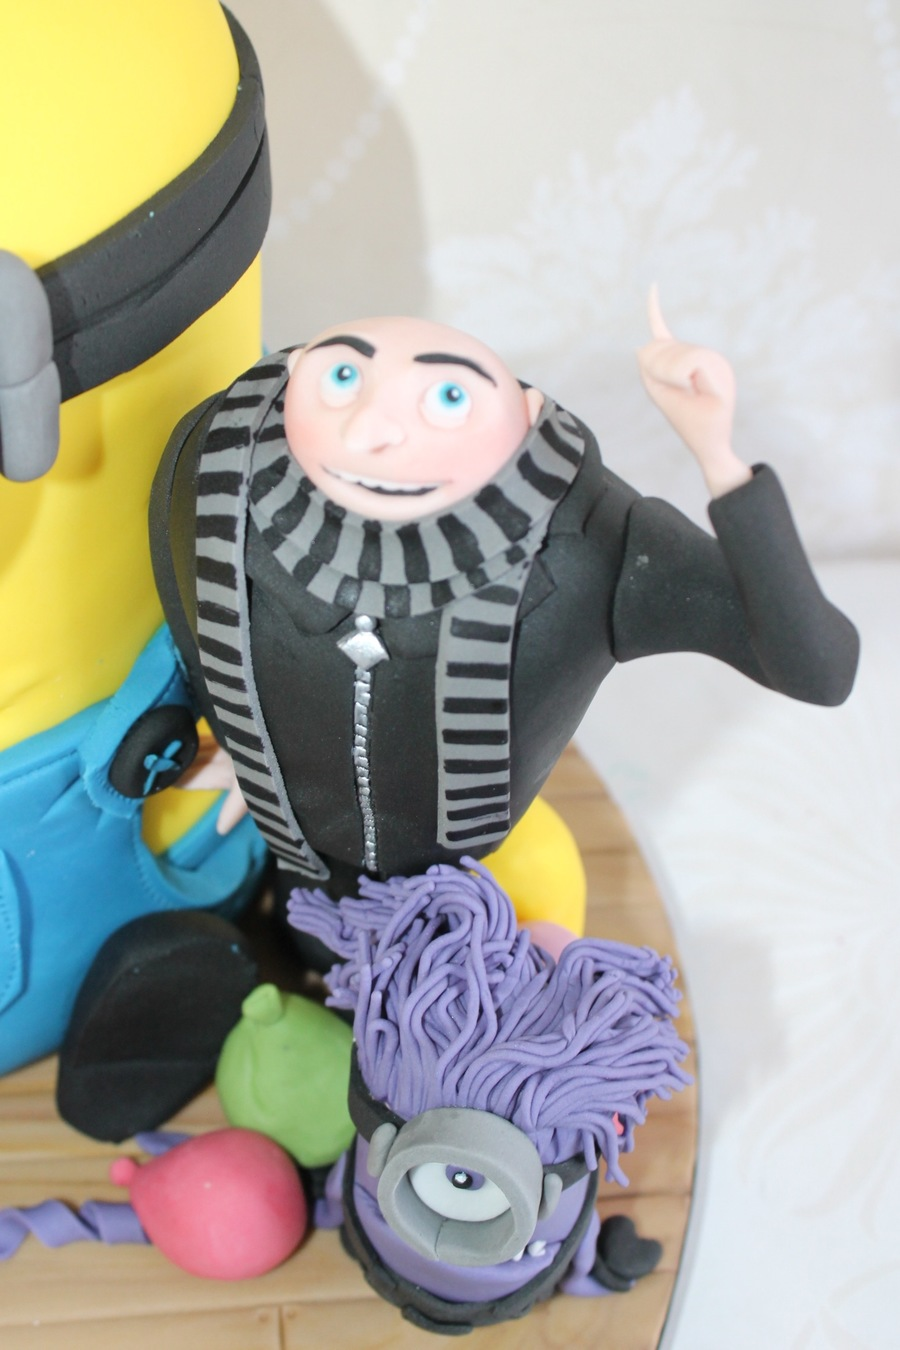 despicable me wedding cake topper despicable me gru cake topper cakecentral 13494